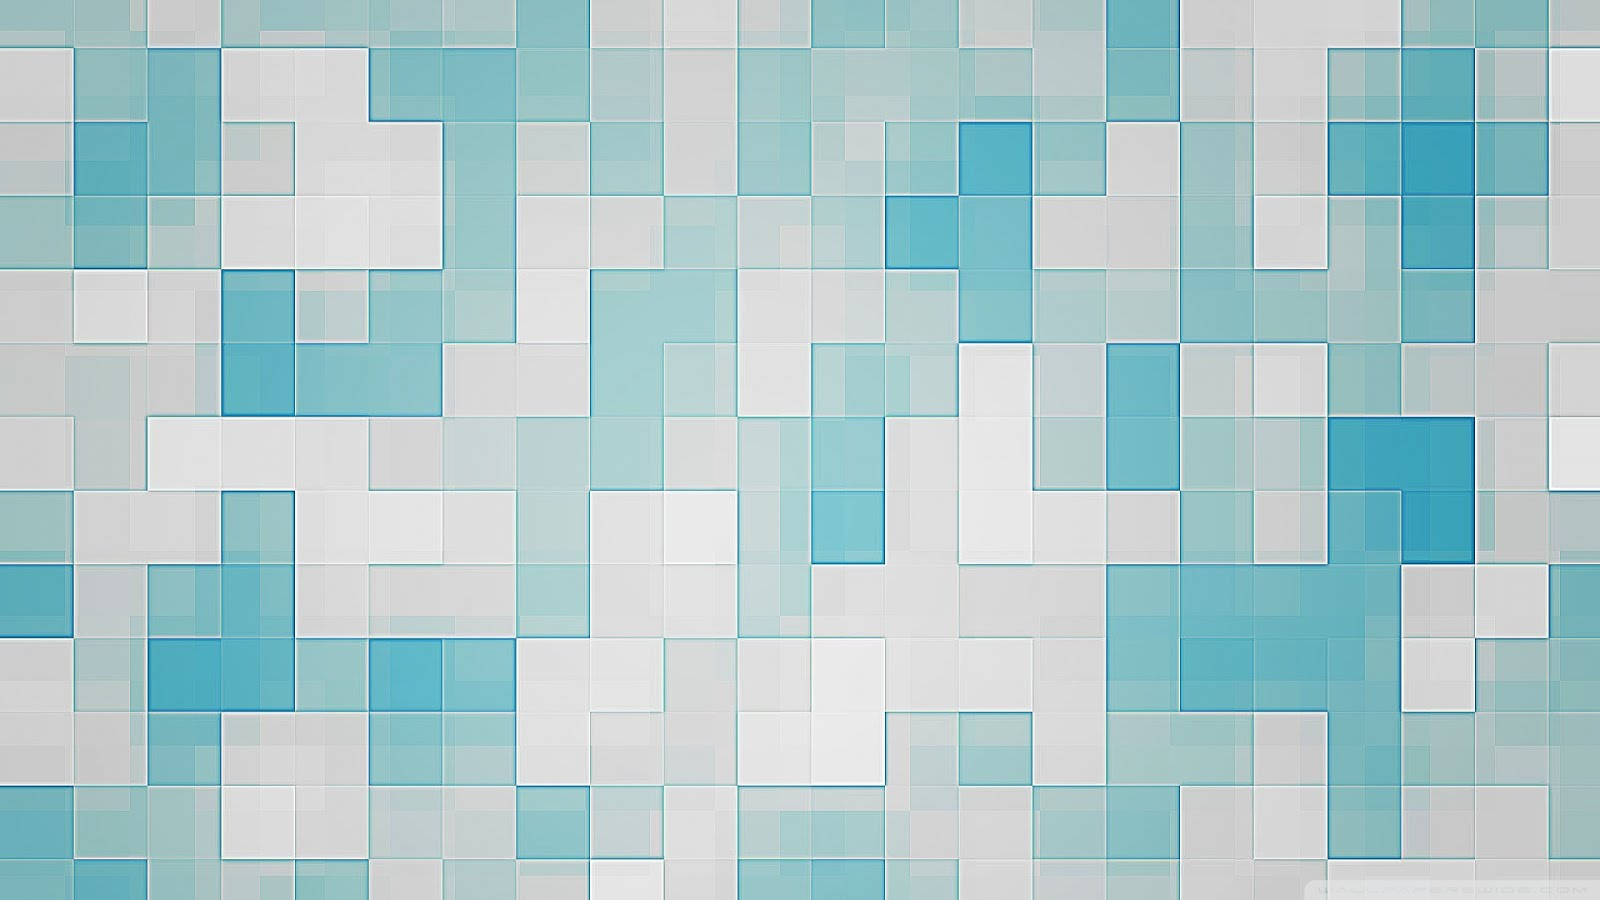 Textured Wallpaper Squares